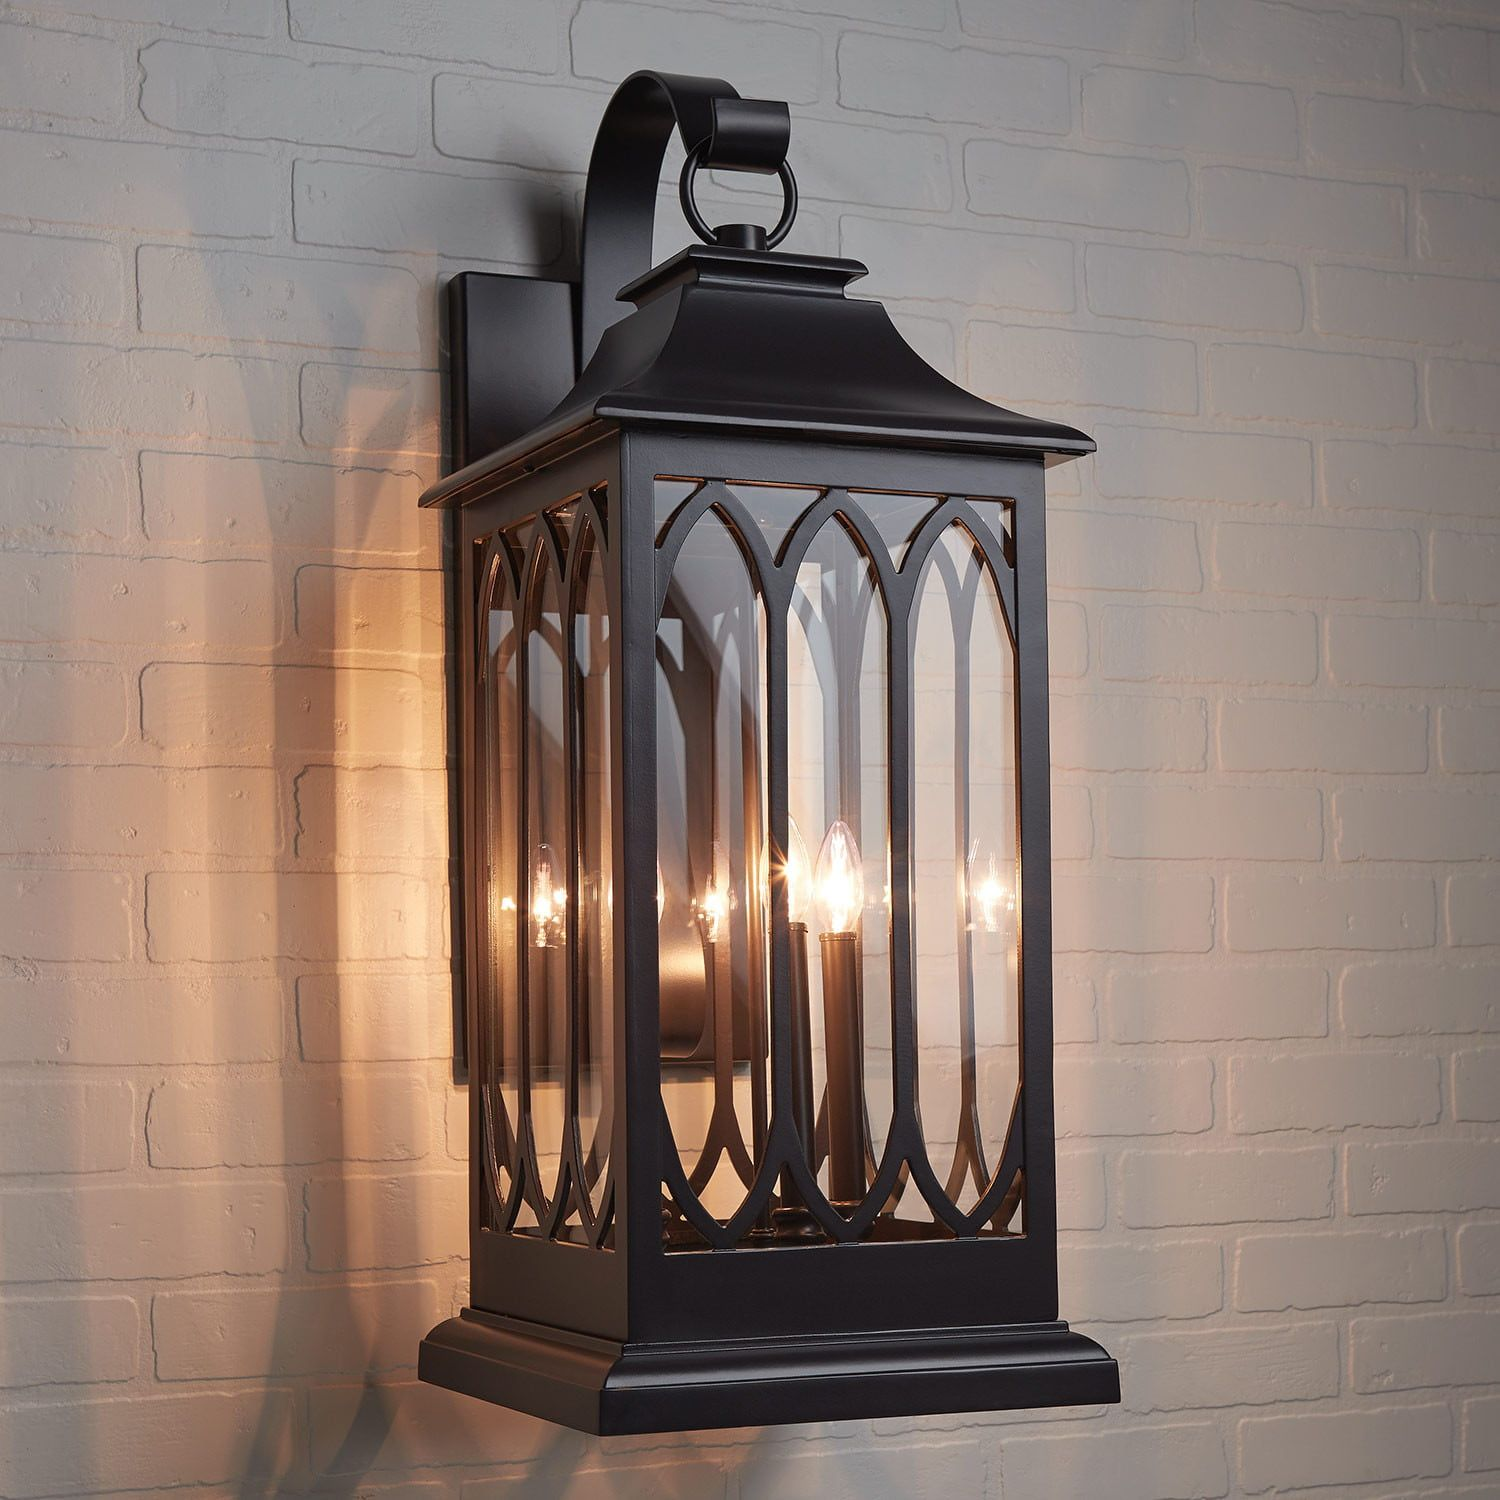 Stonehouse 3 Light Outdoor Entrance Wall Sconce Smooth Bronze Outdoor Wall Sconce Wall Sconce Lighting Sconces